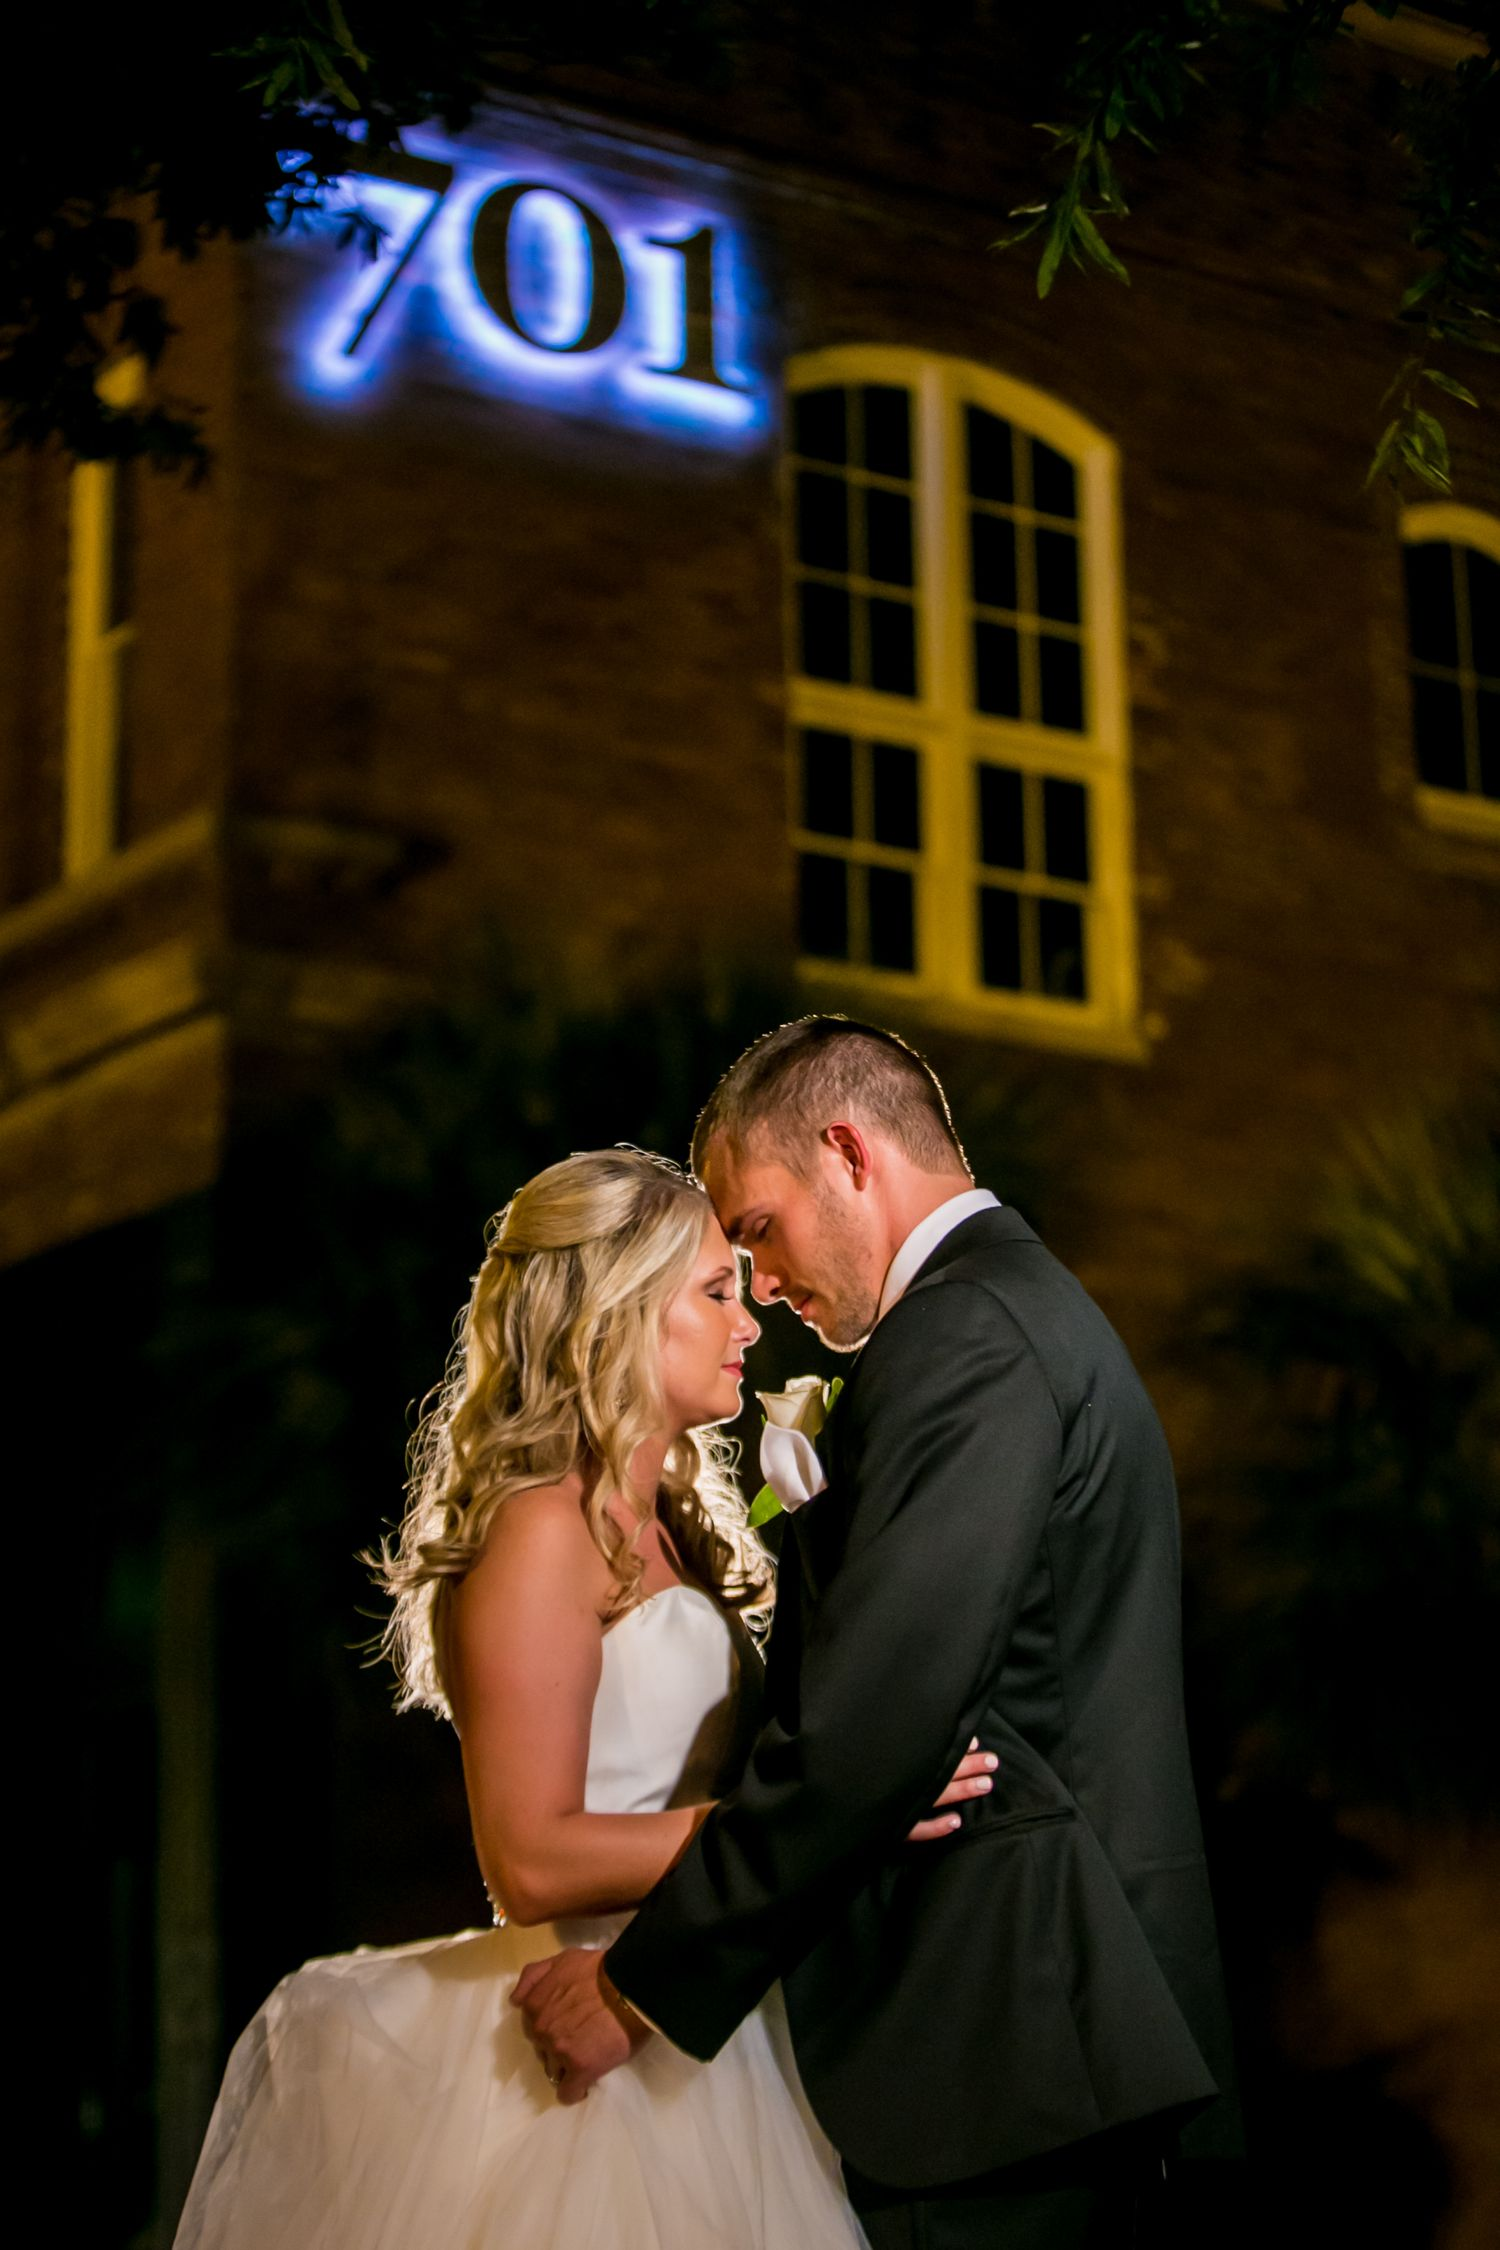 Wedding at 701 Whaley by Columbia, SC, Wedding Photographer Jeff Blake